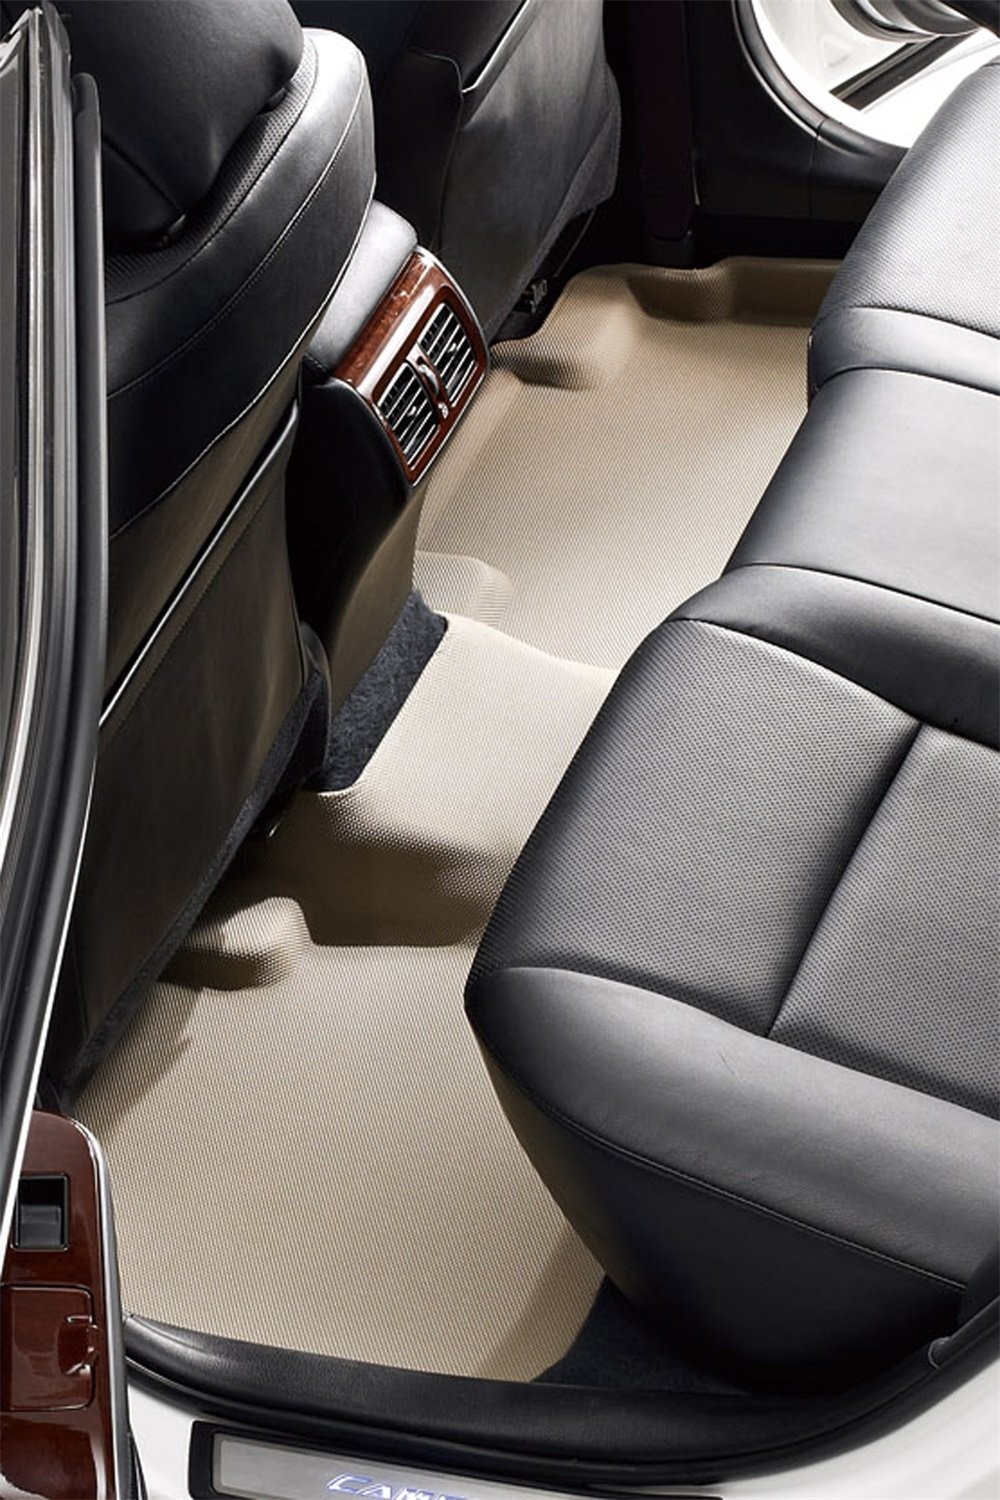 3D MAXpider Second Row Custom Fit All-Weather Floor Mat for Select Kia Forte Models Kagu Rubber Tan